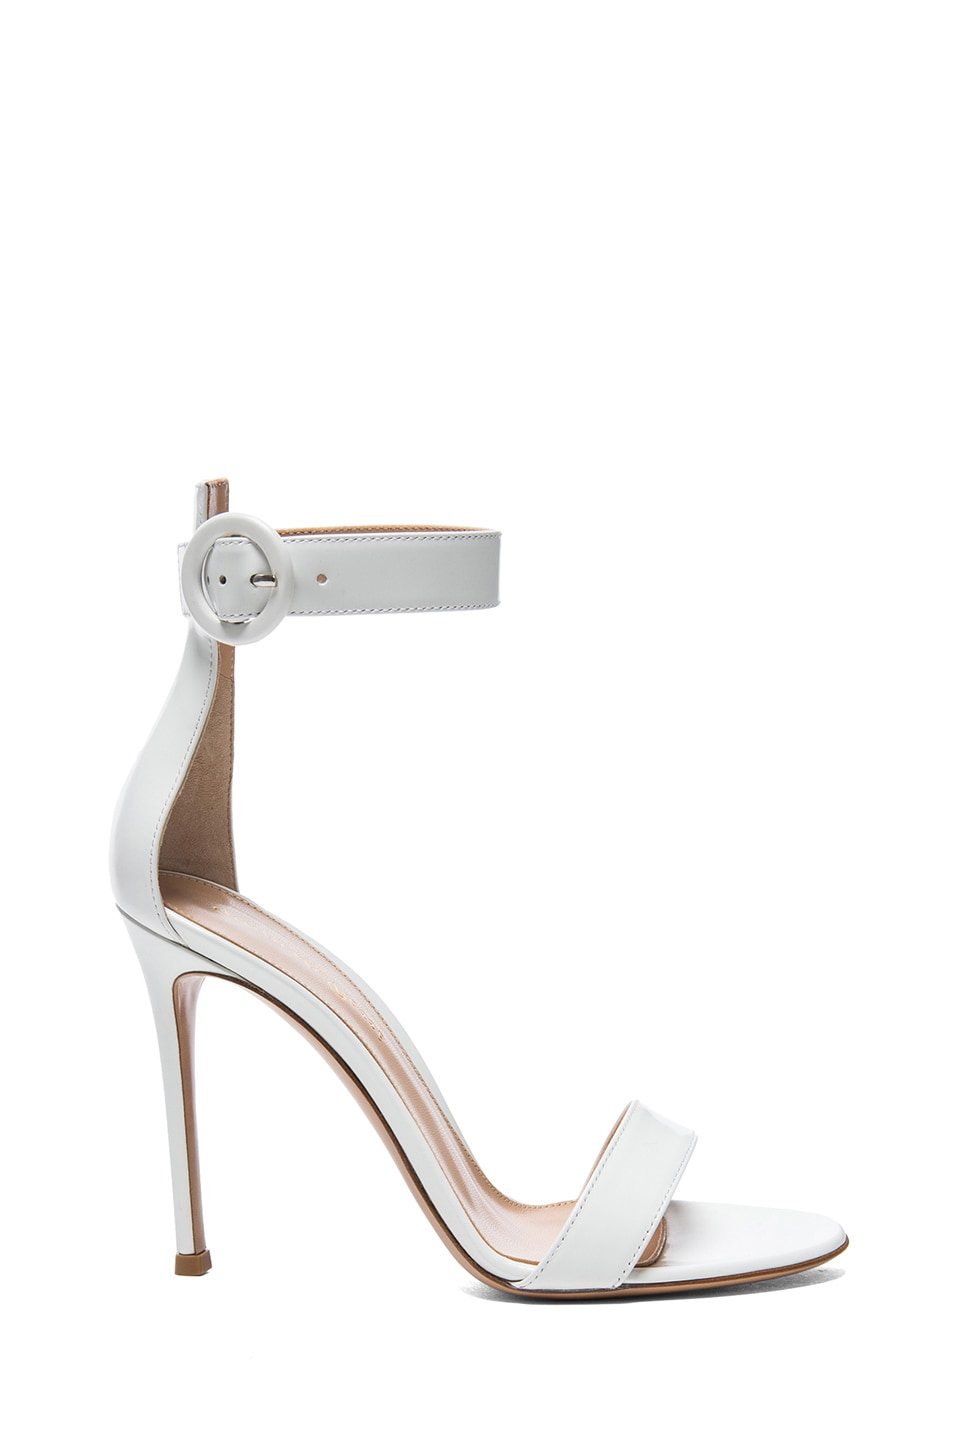 Image 1 of Gianvito Rossi Leather Ankle Strap Sandals in White